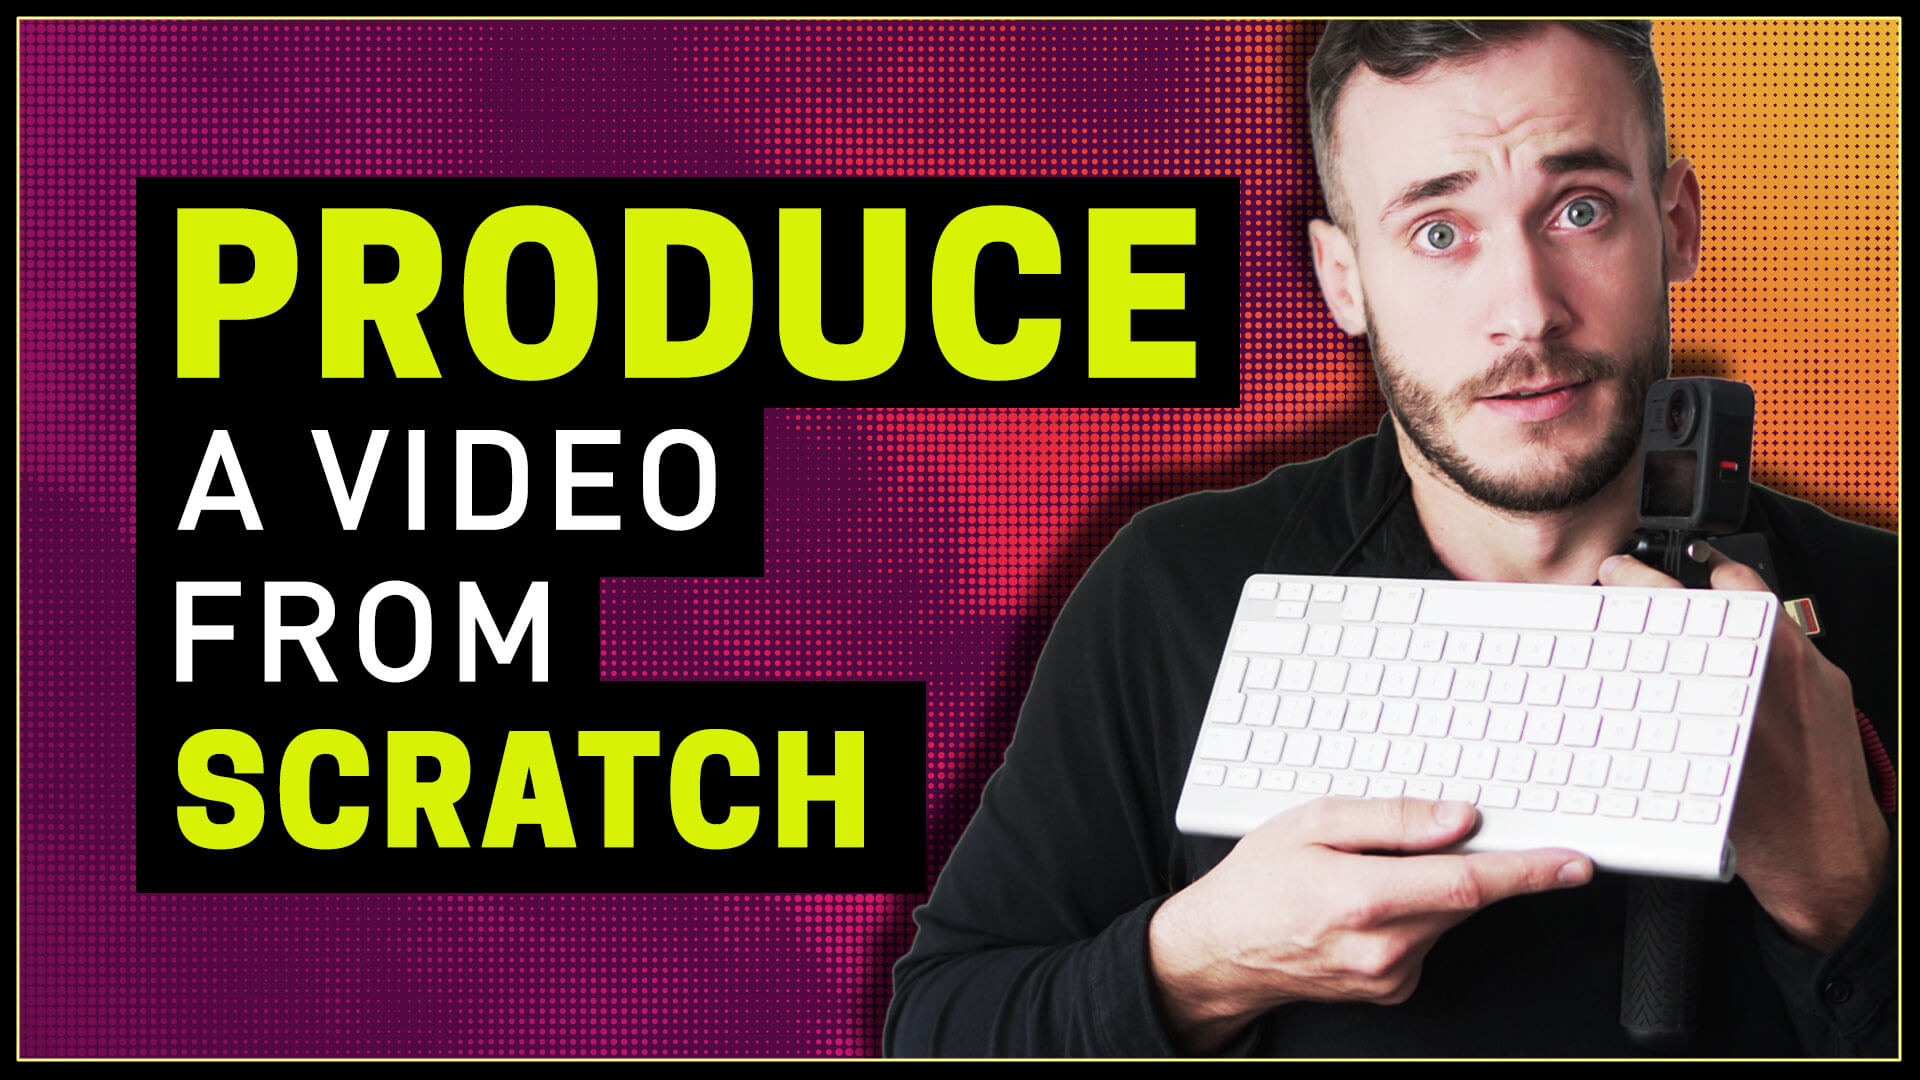 How to produce a video from scratch